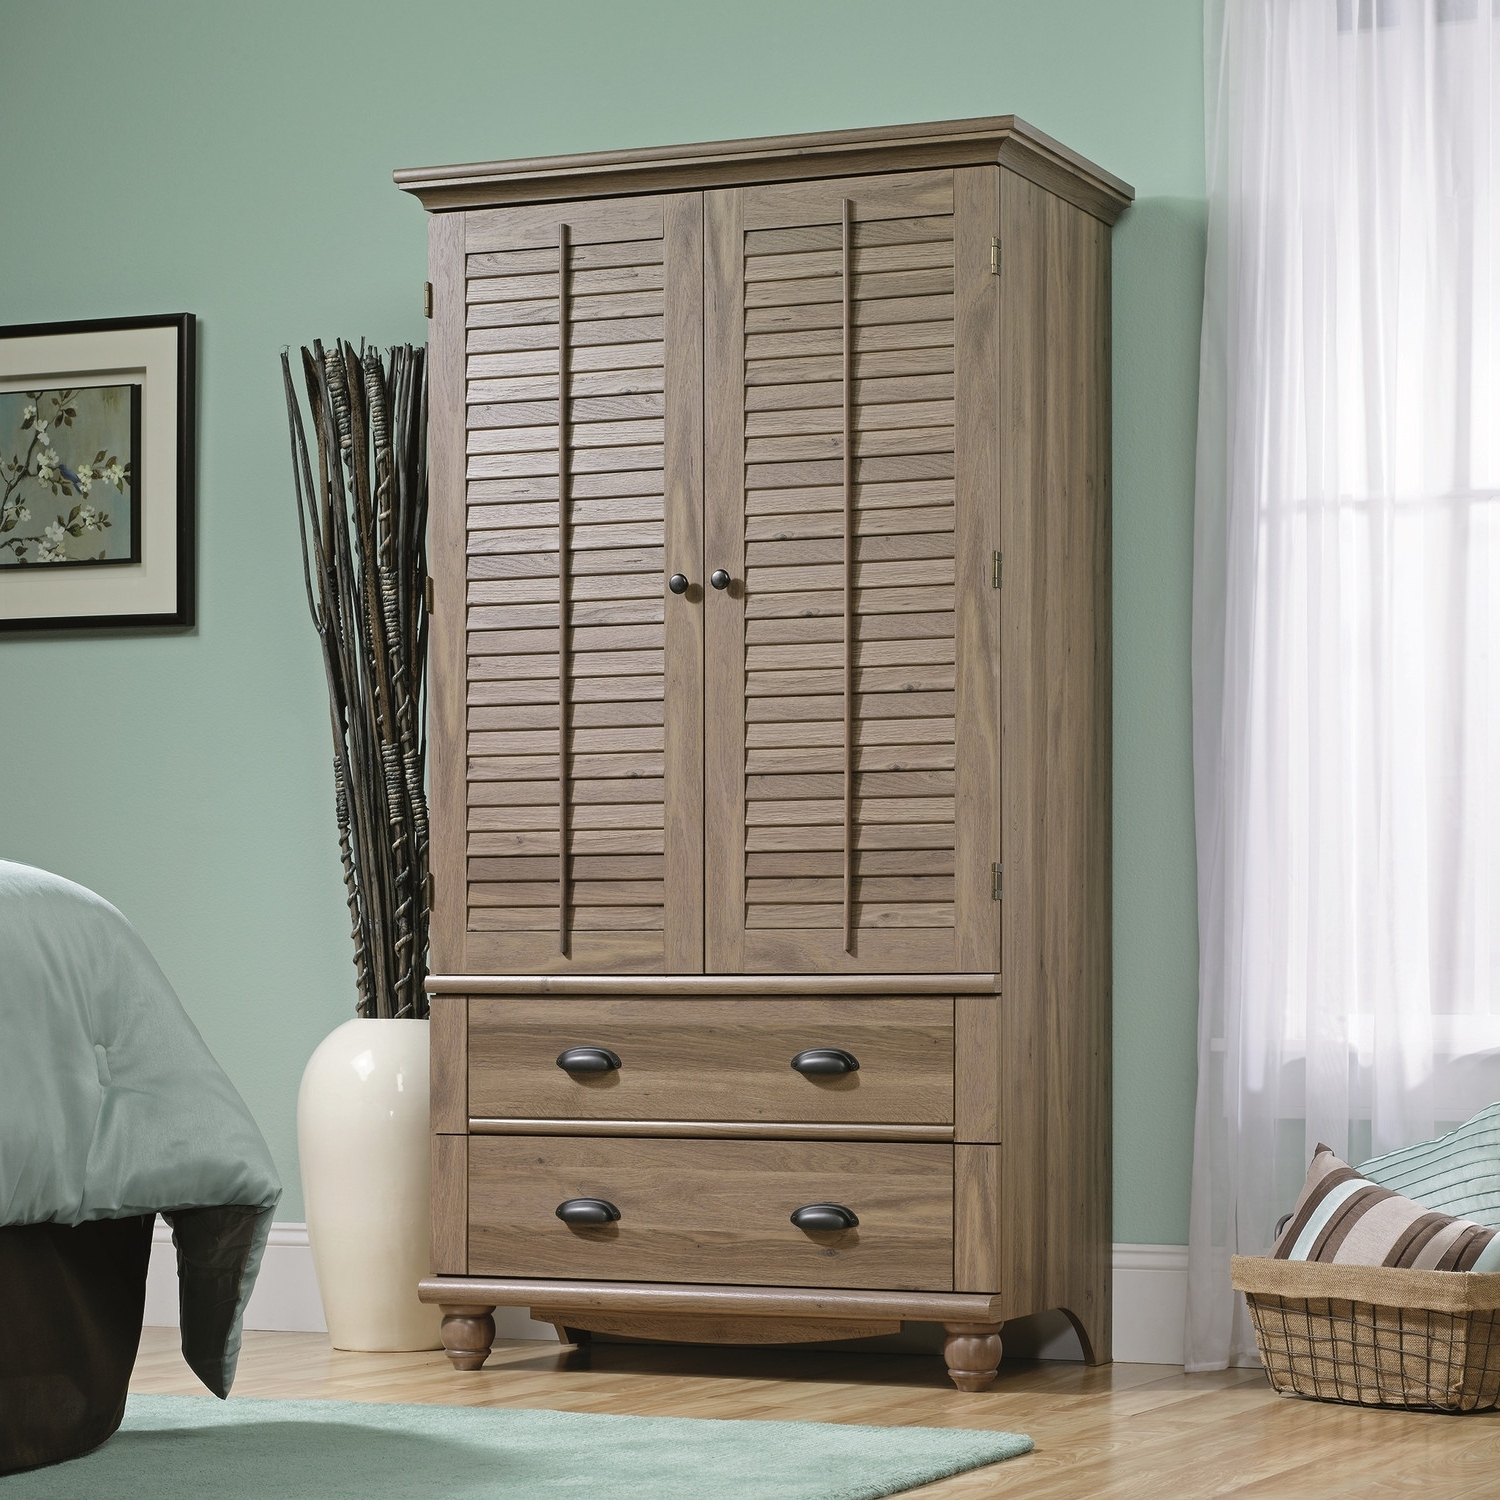 Widely Used Wicker Armoire Wardrobes Inside Bedroom: Antique Interior Storage Design With Wardrobe Armoire (View 15 of 15)